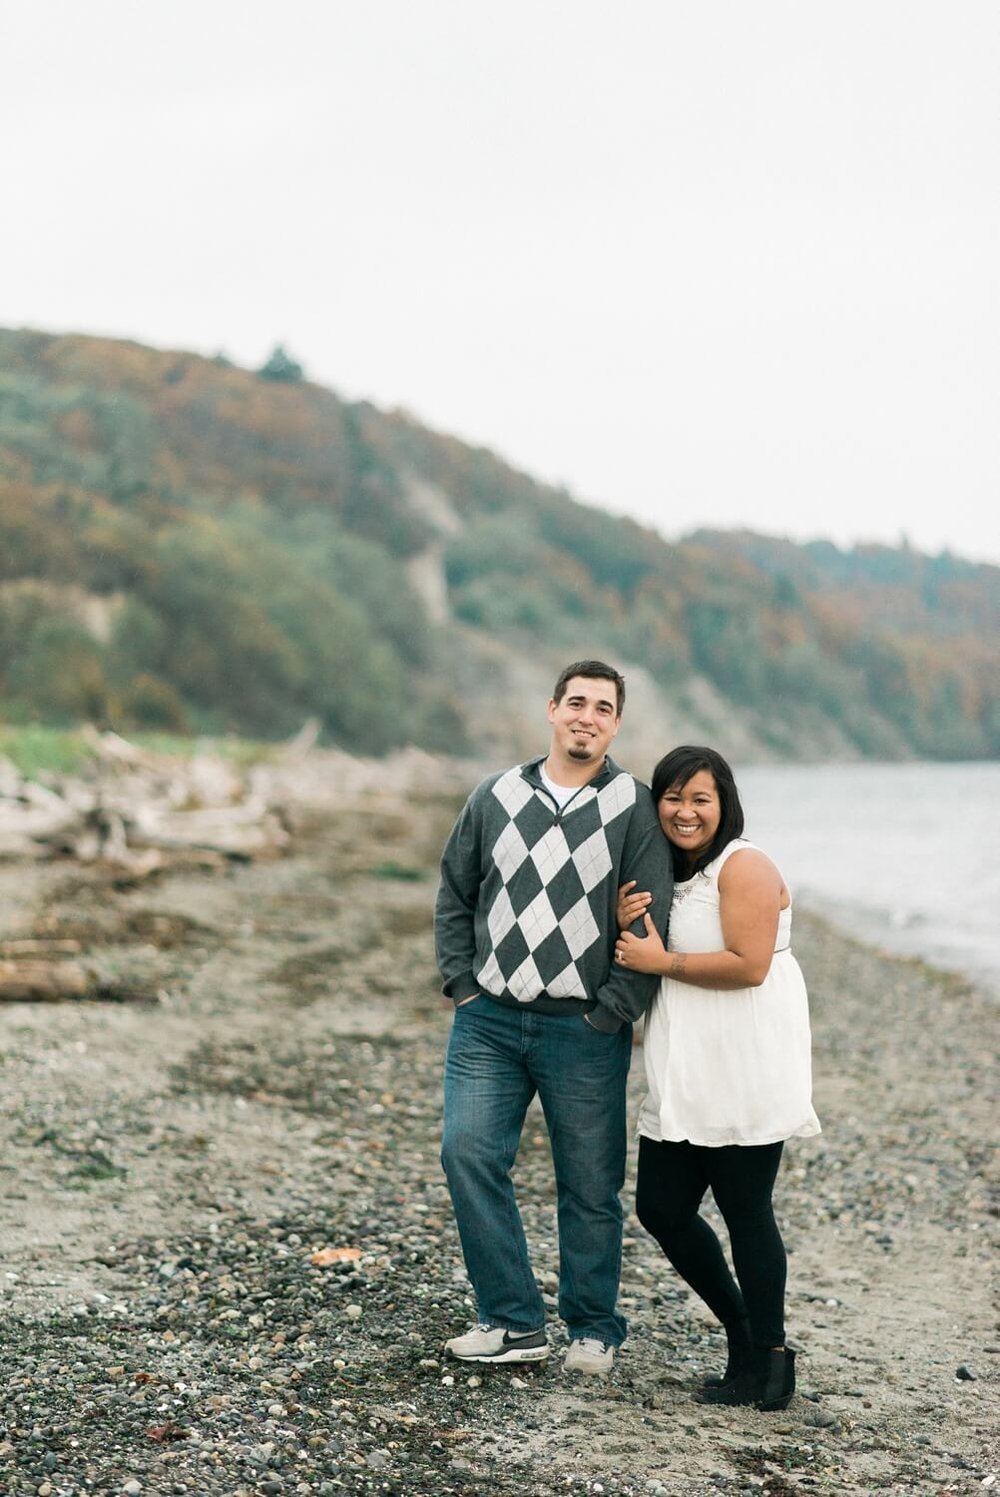 seattle-beach-engagement-photography-west-point-lighthouse-discovery-park-shelley-marie-photo-720_cr.jpg